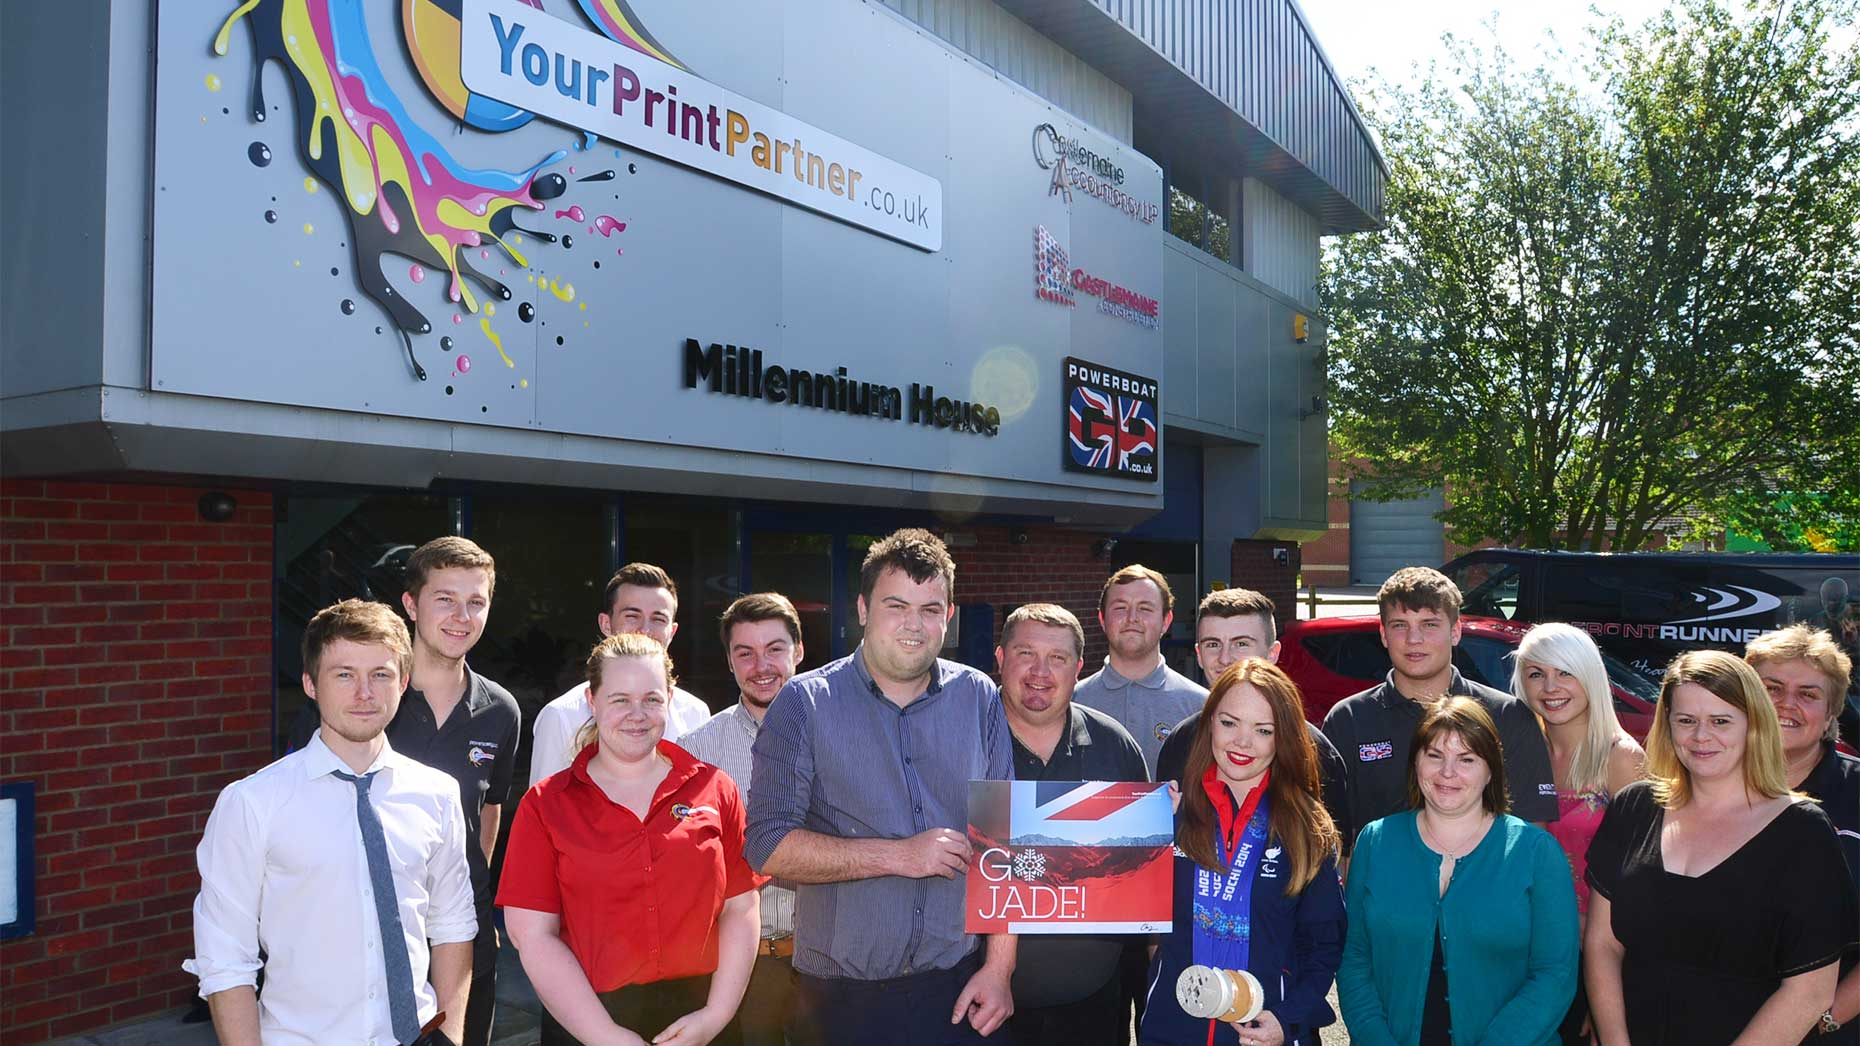 Your Print Partner will continue to support young local talents. Photo: Steve Smailes for The Lincolnite